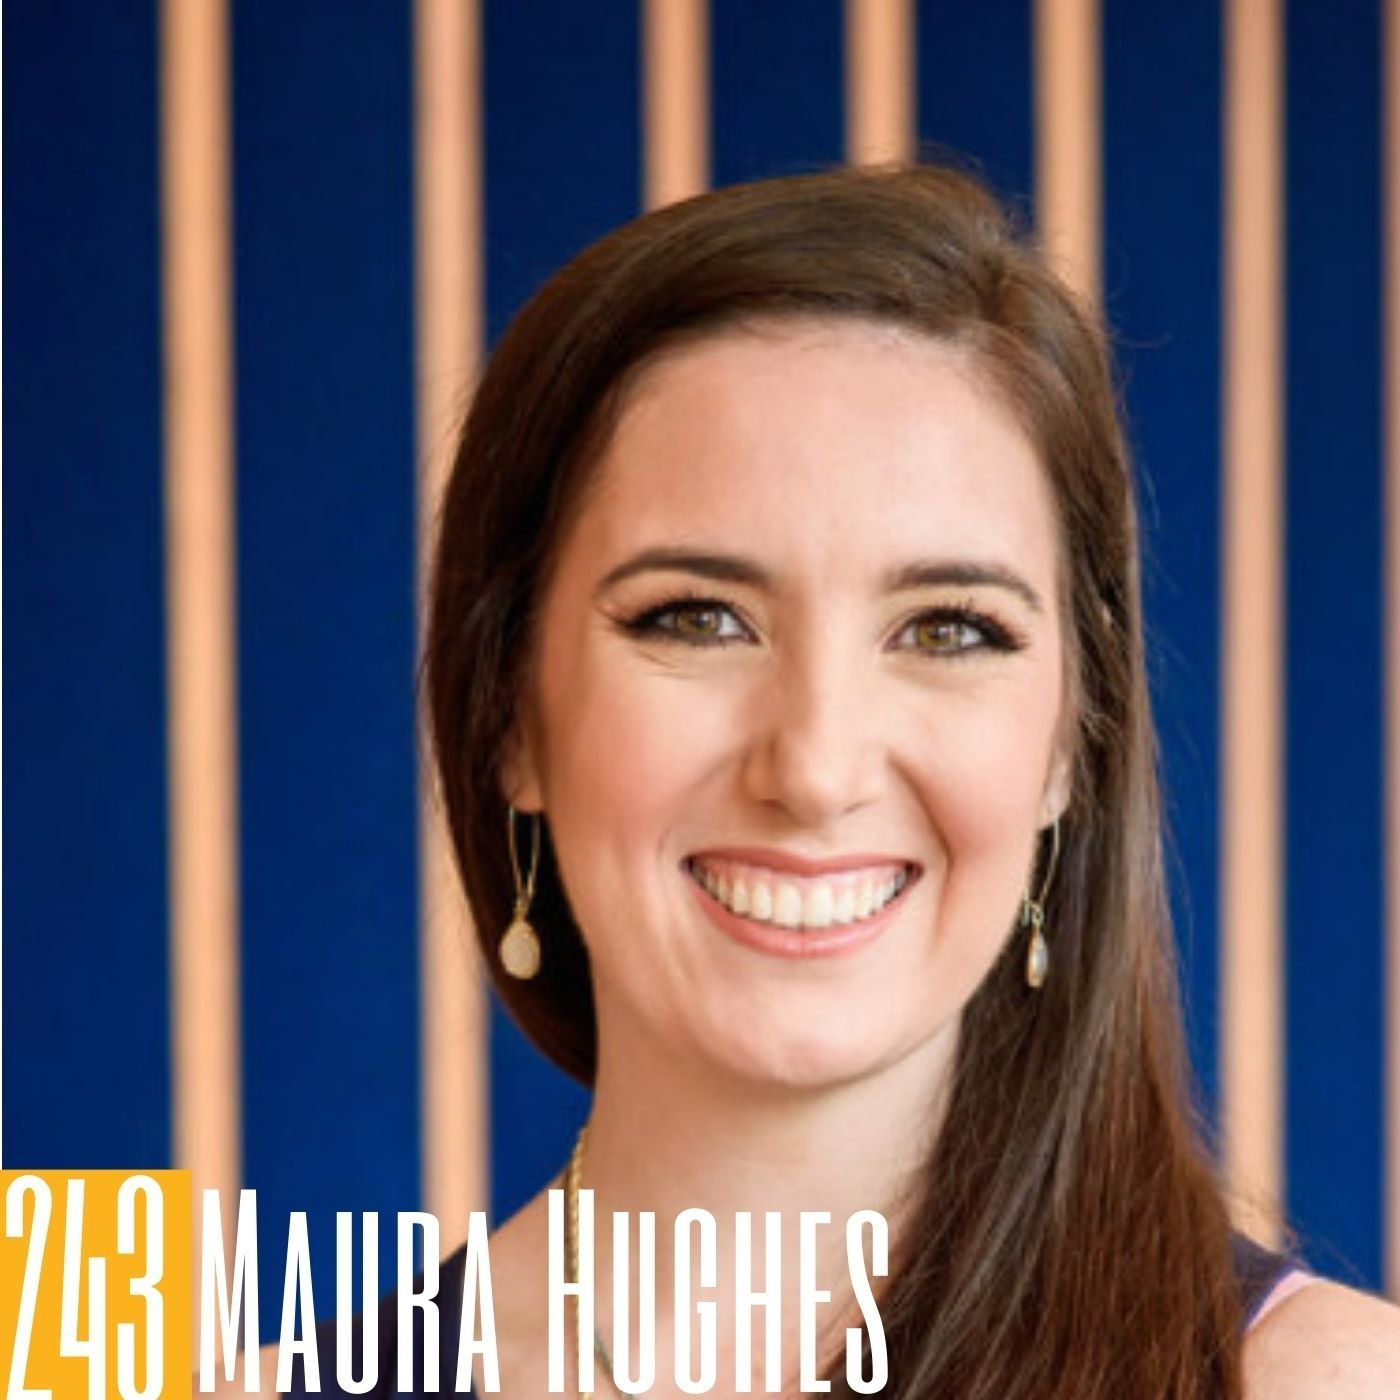 243 Maura Hughes - Podcasting is a Community